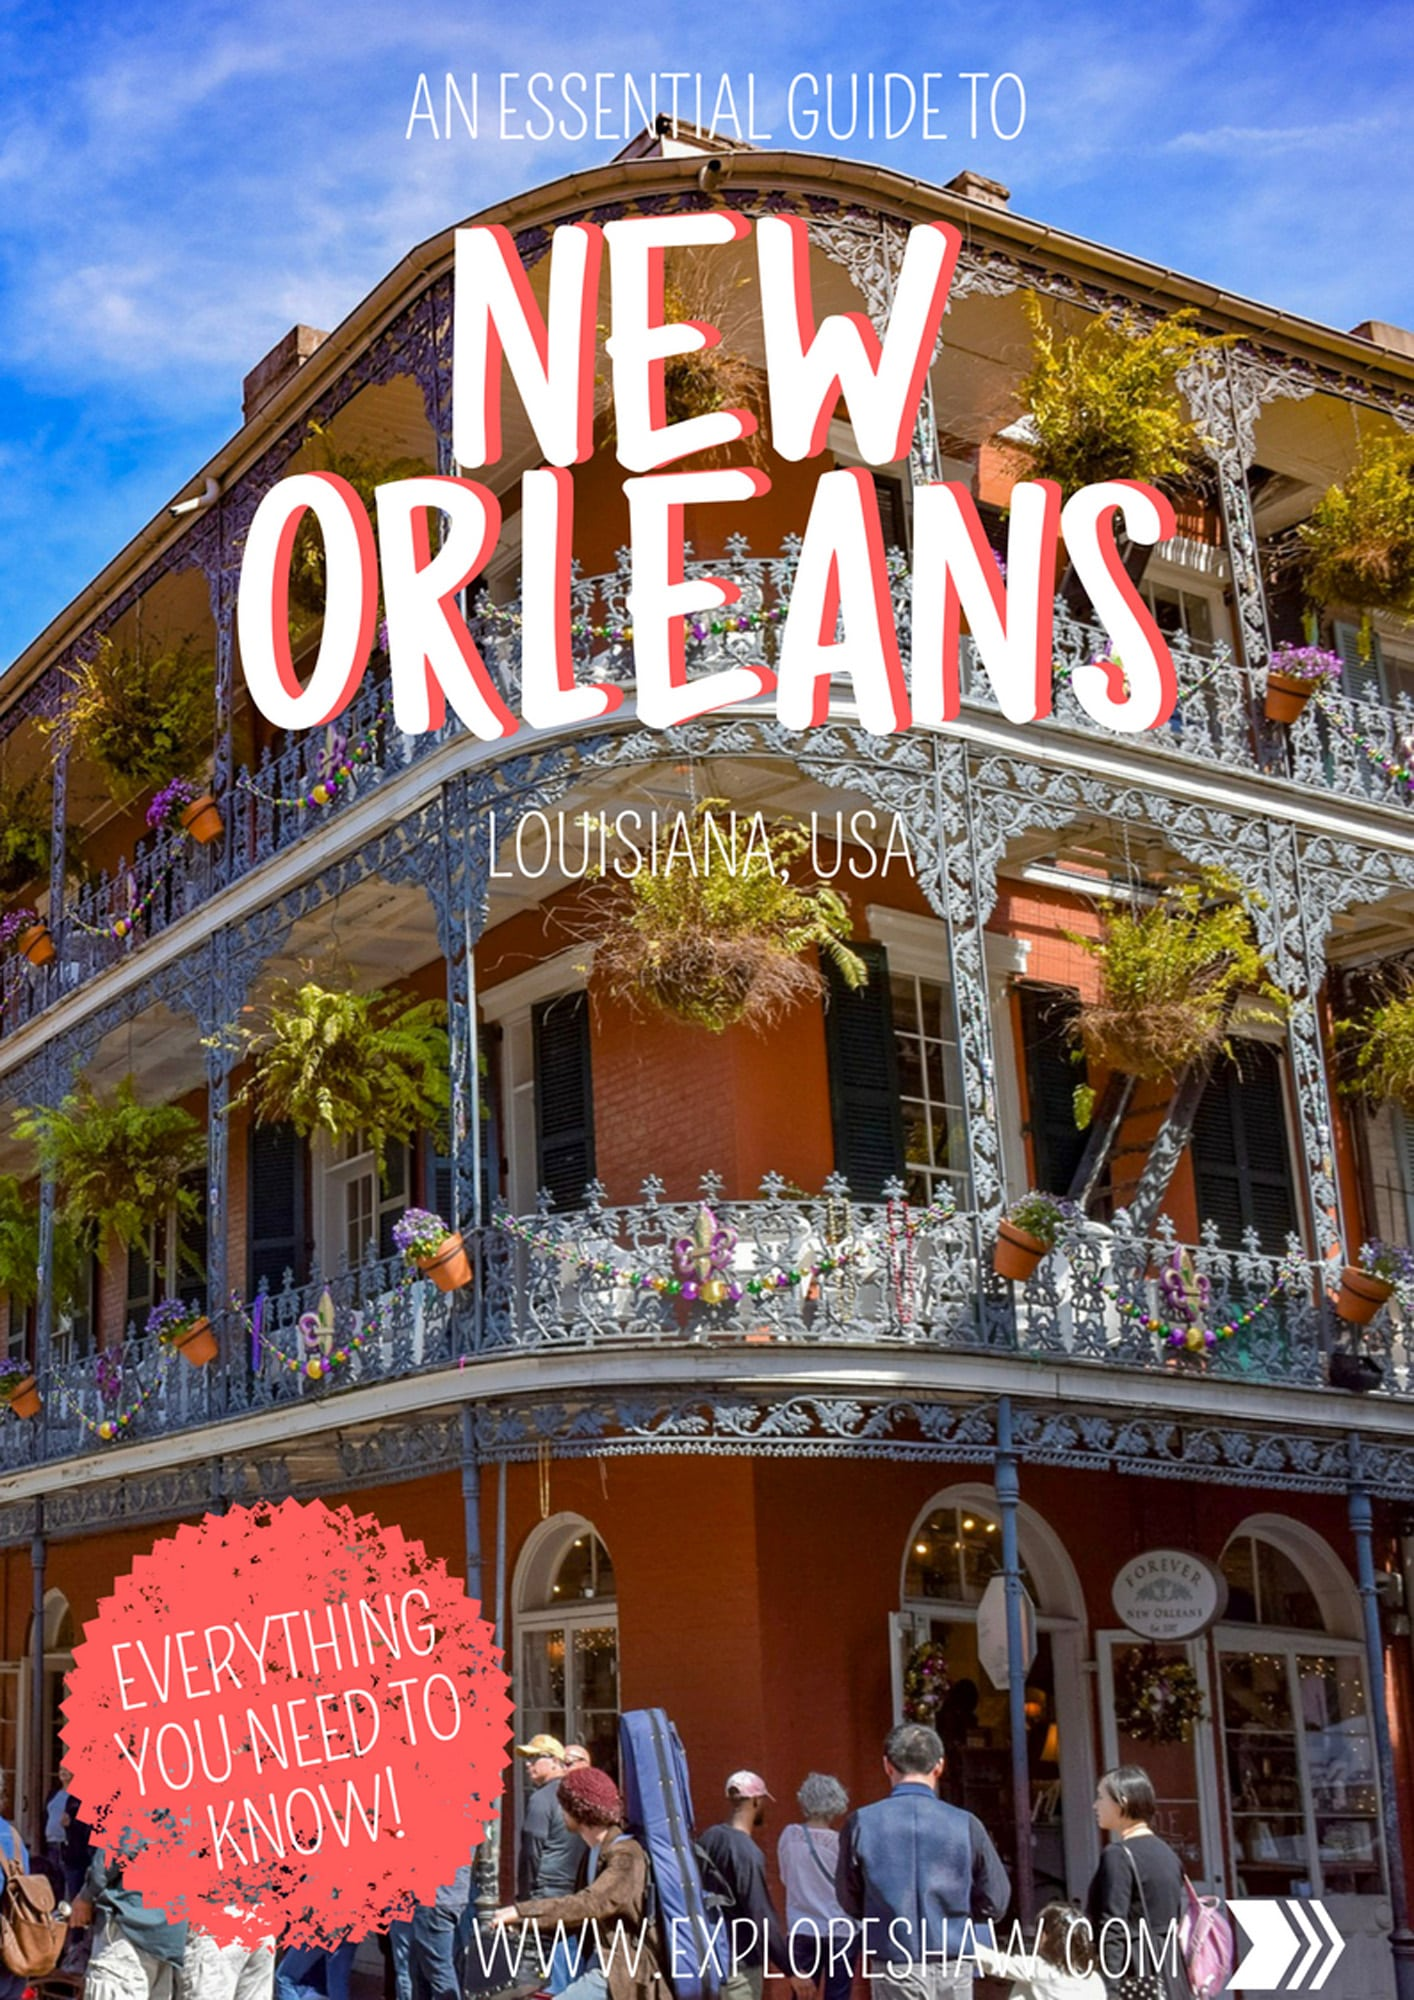 NEW ORLEANS GUIDE